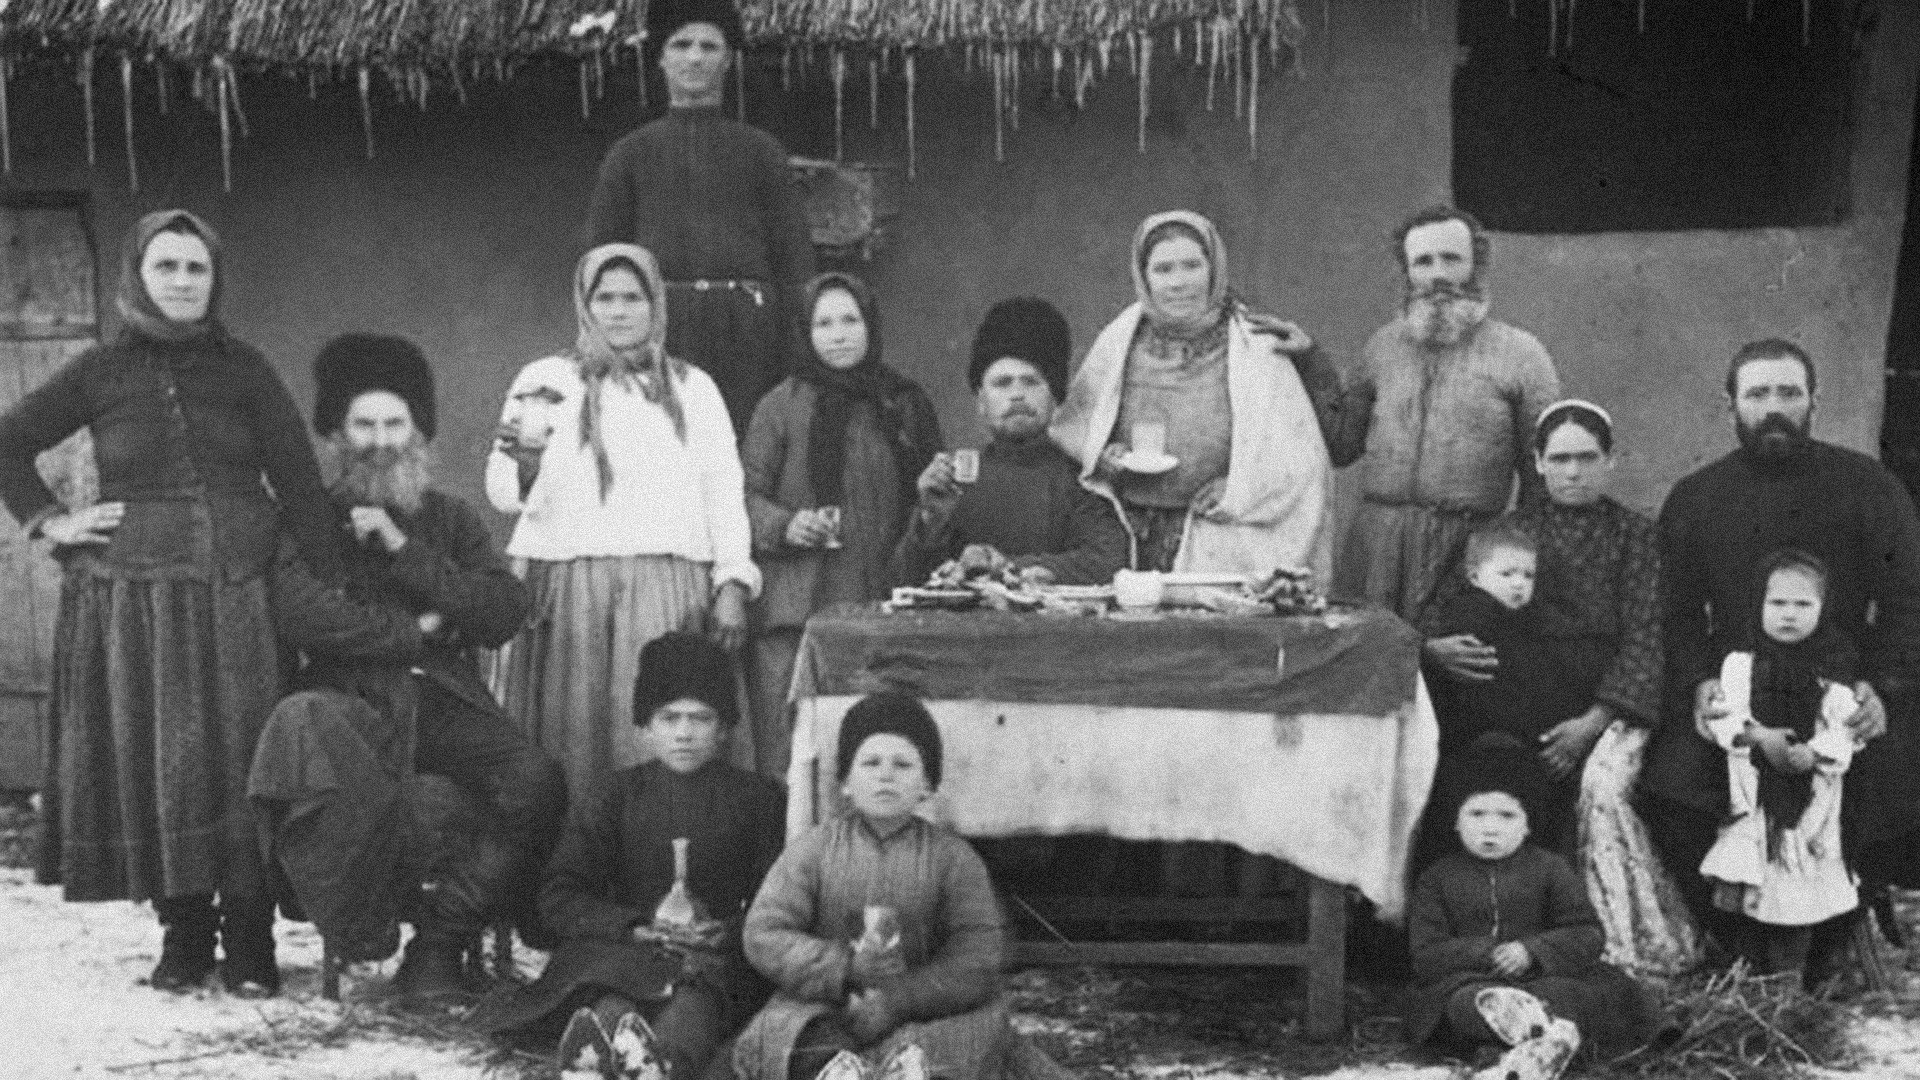 A cossack family portrait, 1900s